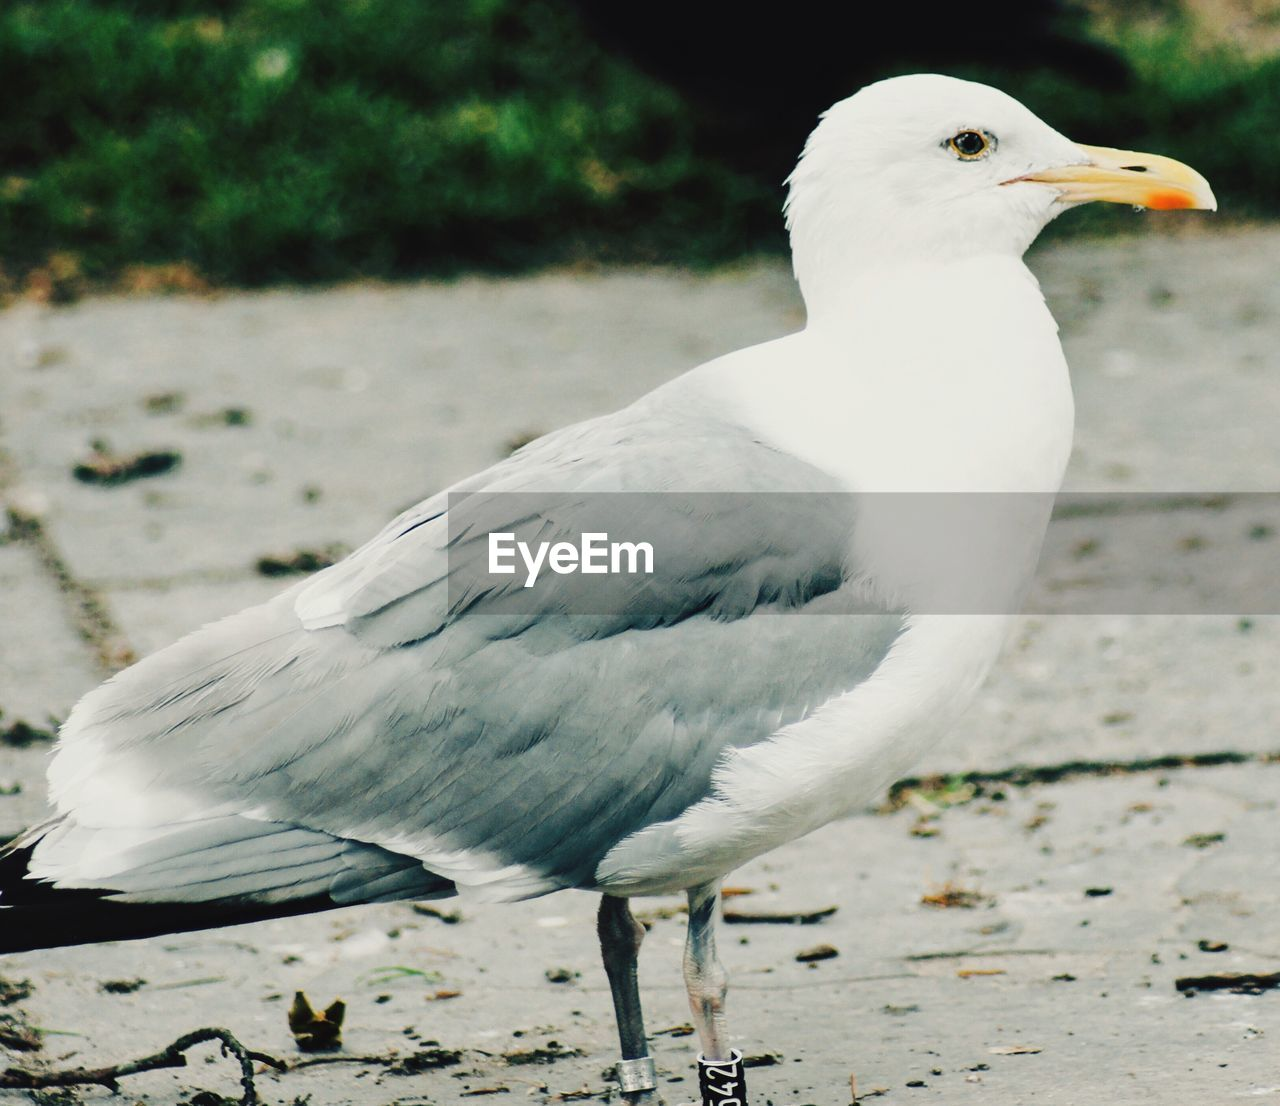 bird, animal themes, animal, vertebrate, animals in the wild, animal wildlife, one animal, white color, seagull, focus on foreground, day, land, no people, nature, full length, close-up, looking, outdoors, perching, beauty in nature, beak